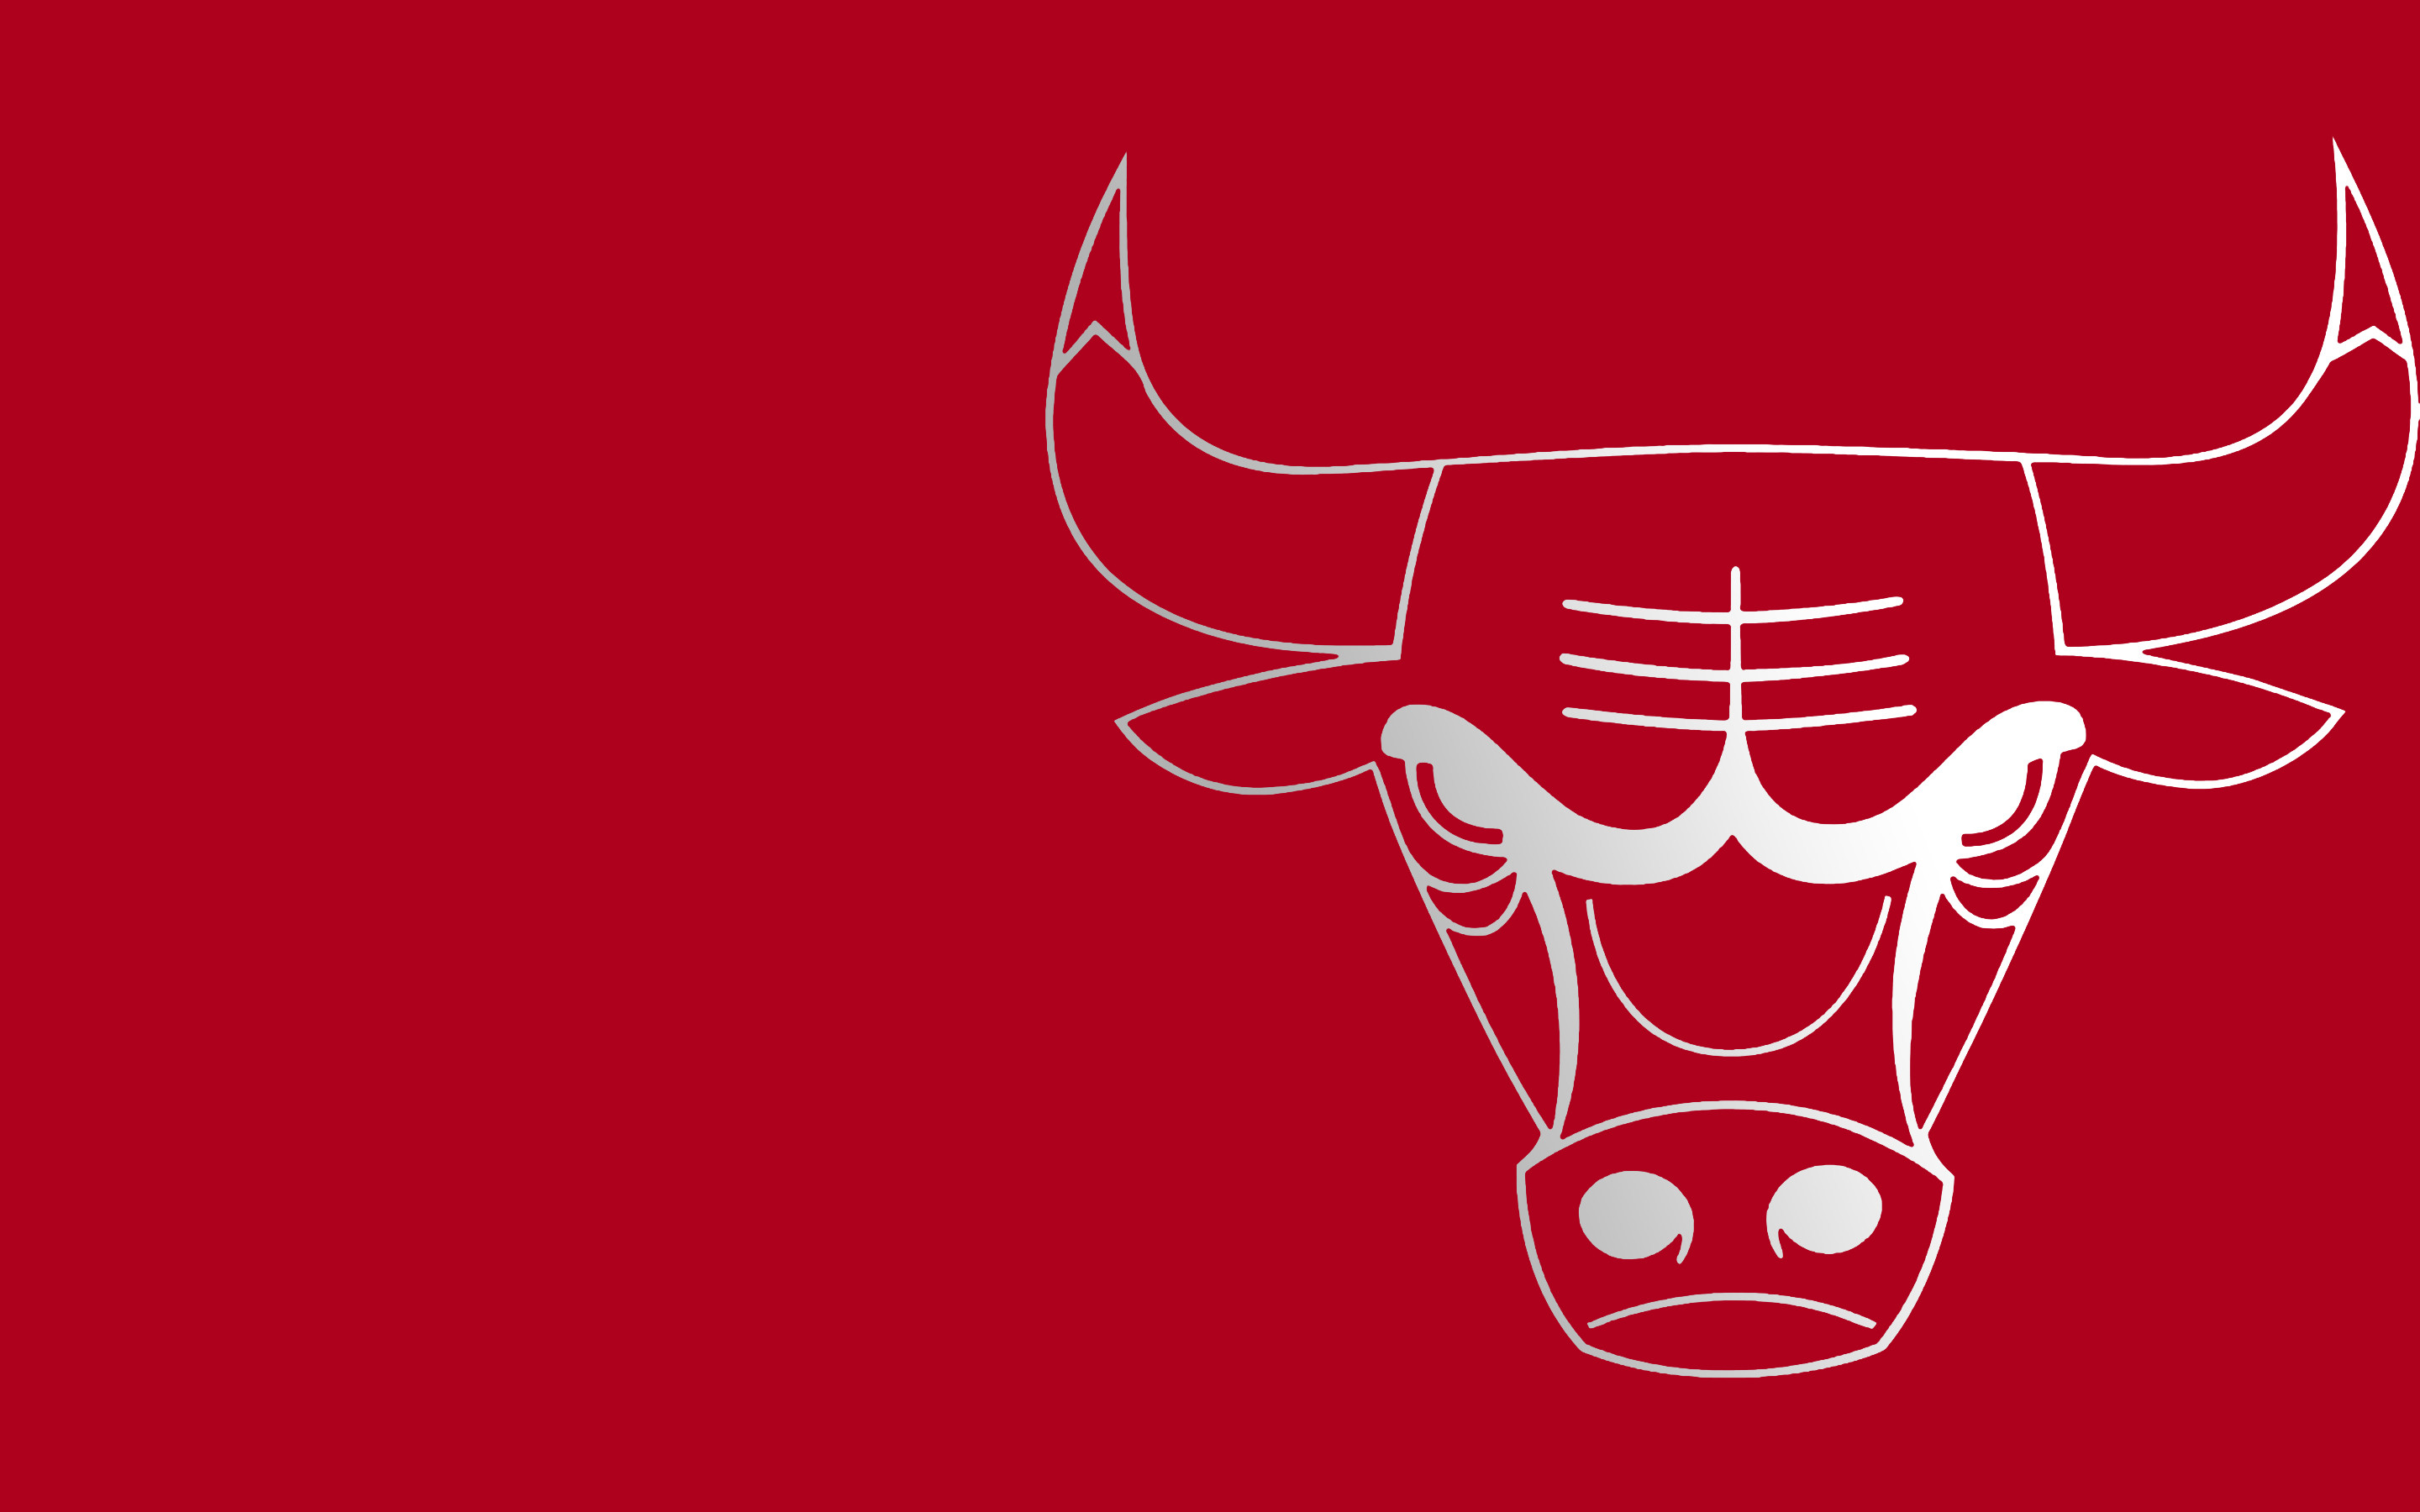 2880x1800 I made a Bulls wallpaper!